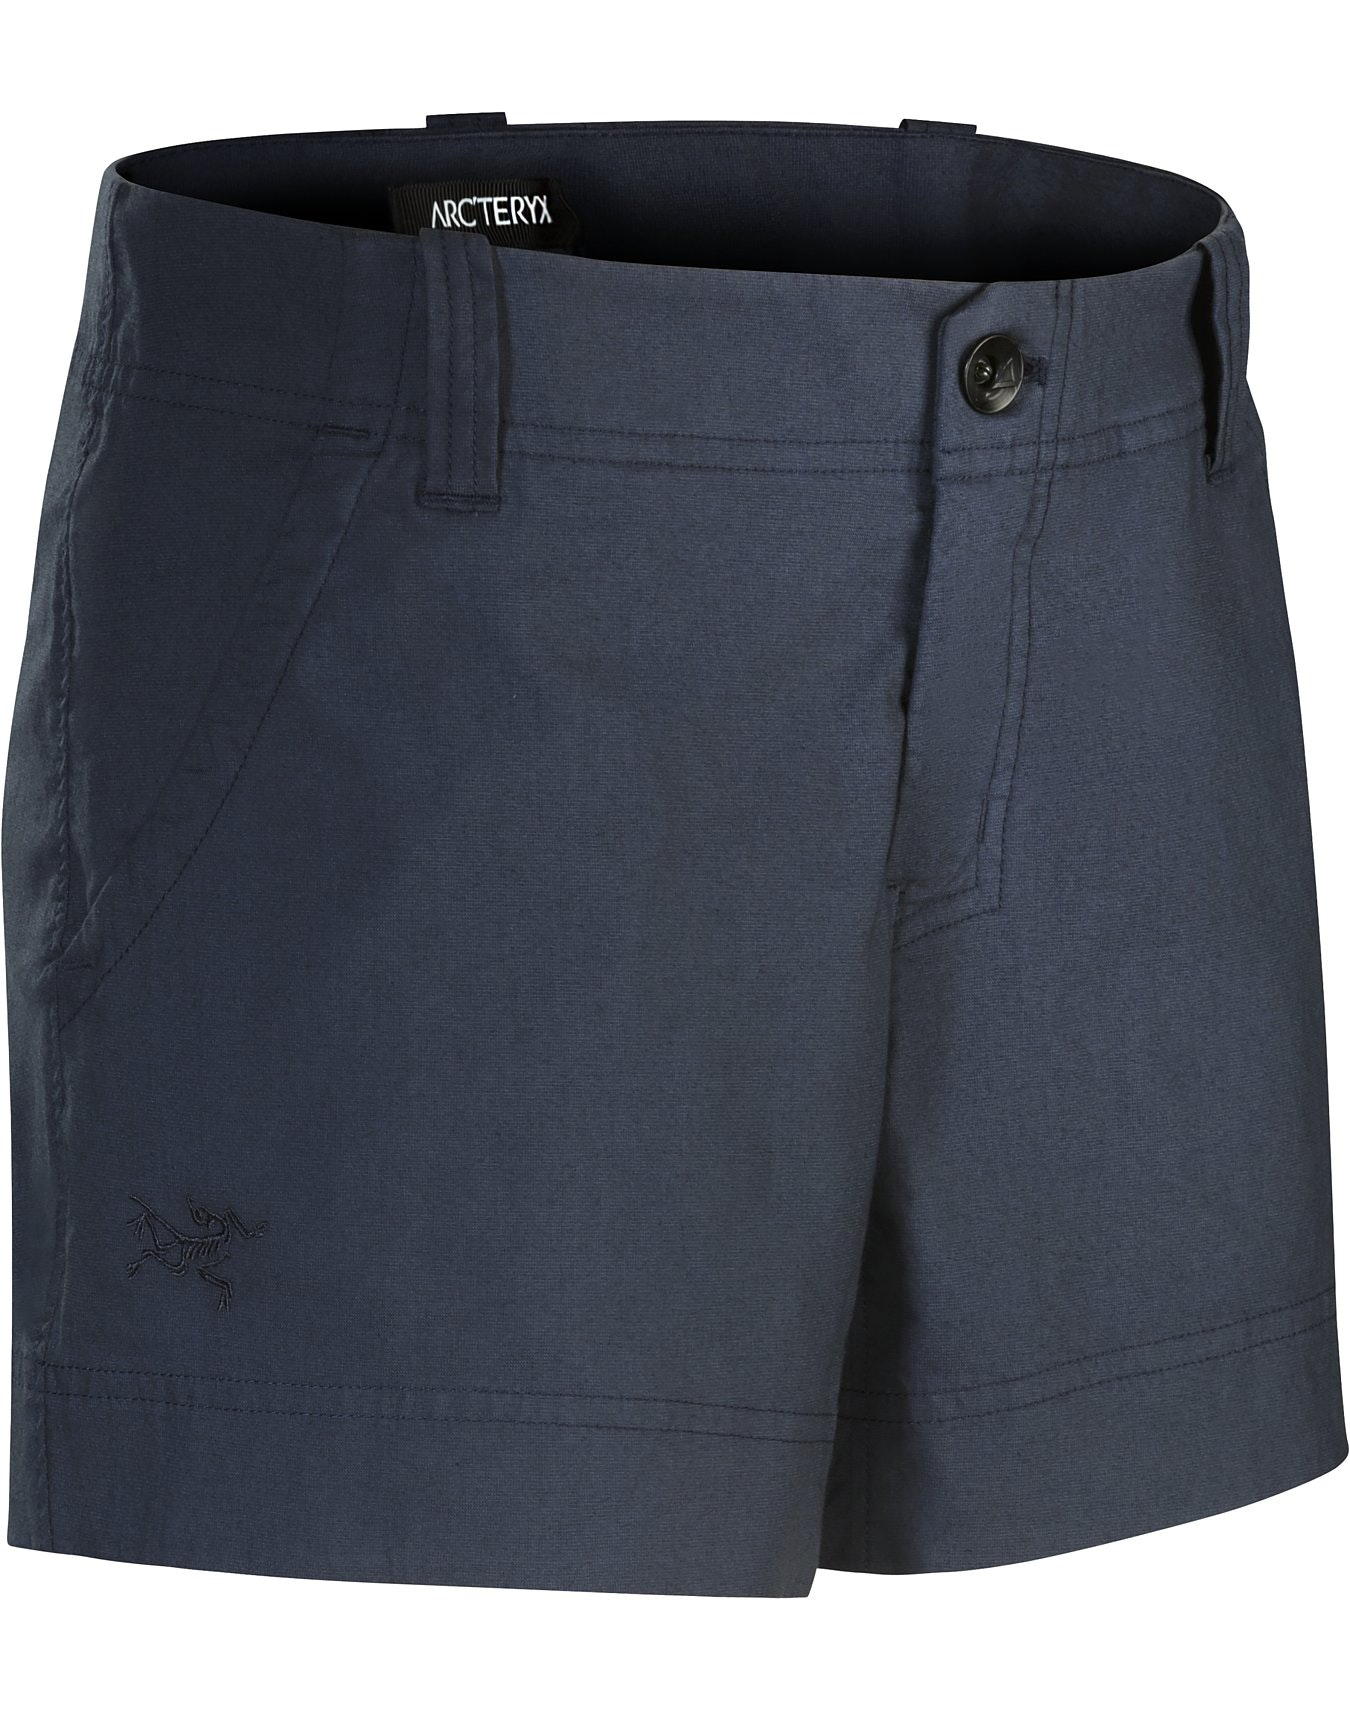 a72ed6ee9478 Arc teryx Camden Chino Short - Women s